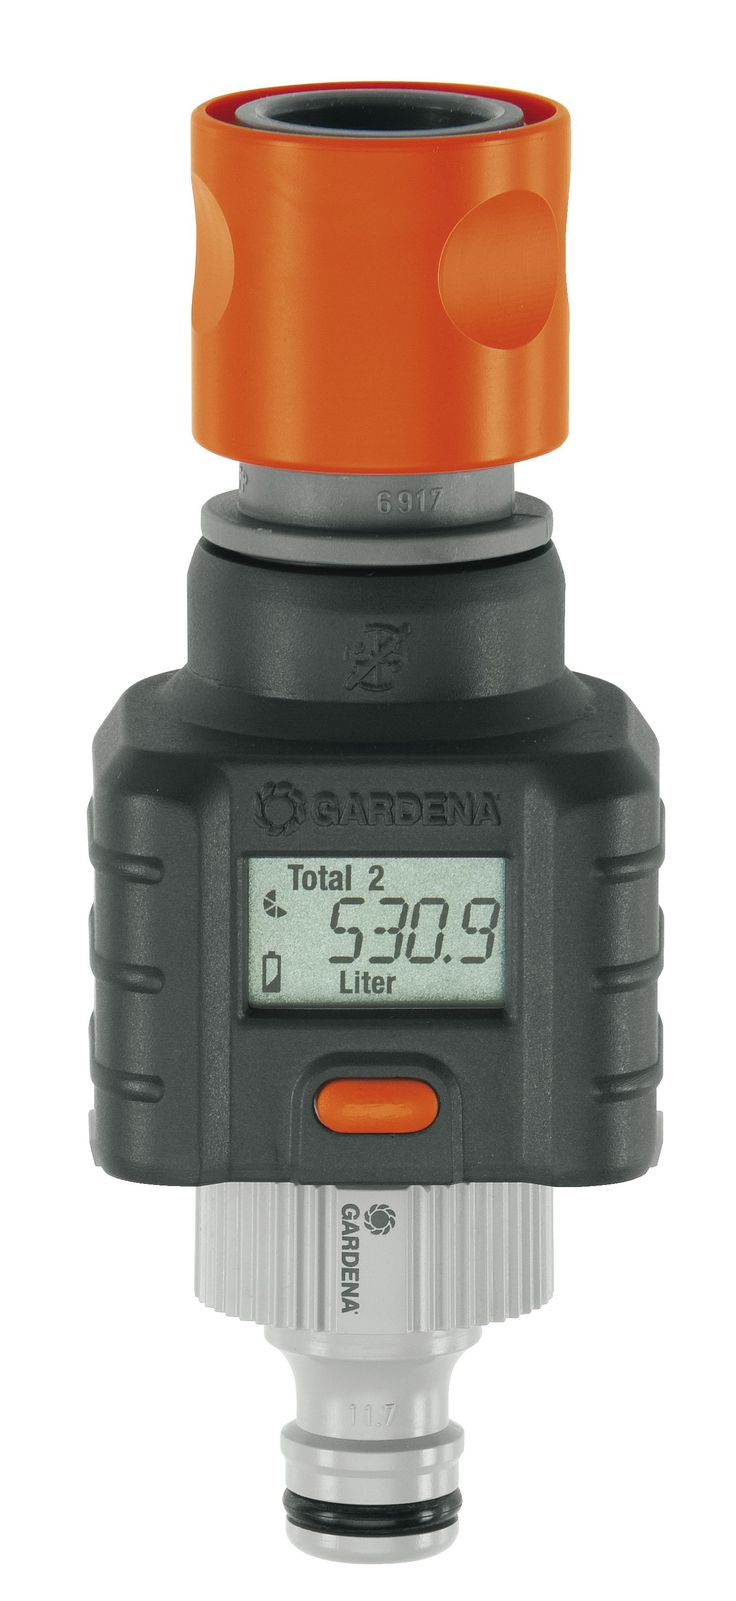 4 Reasons Gardena's New Water Smart Flow Meter Should Be On Your Shopping List